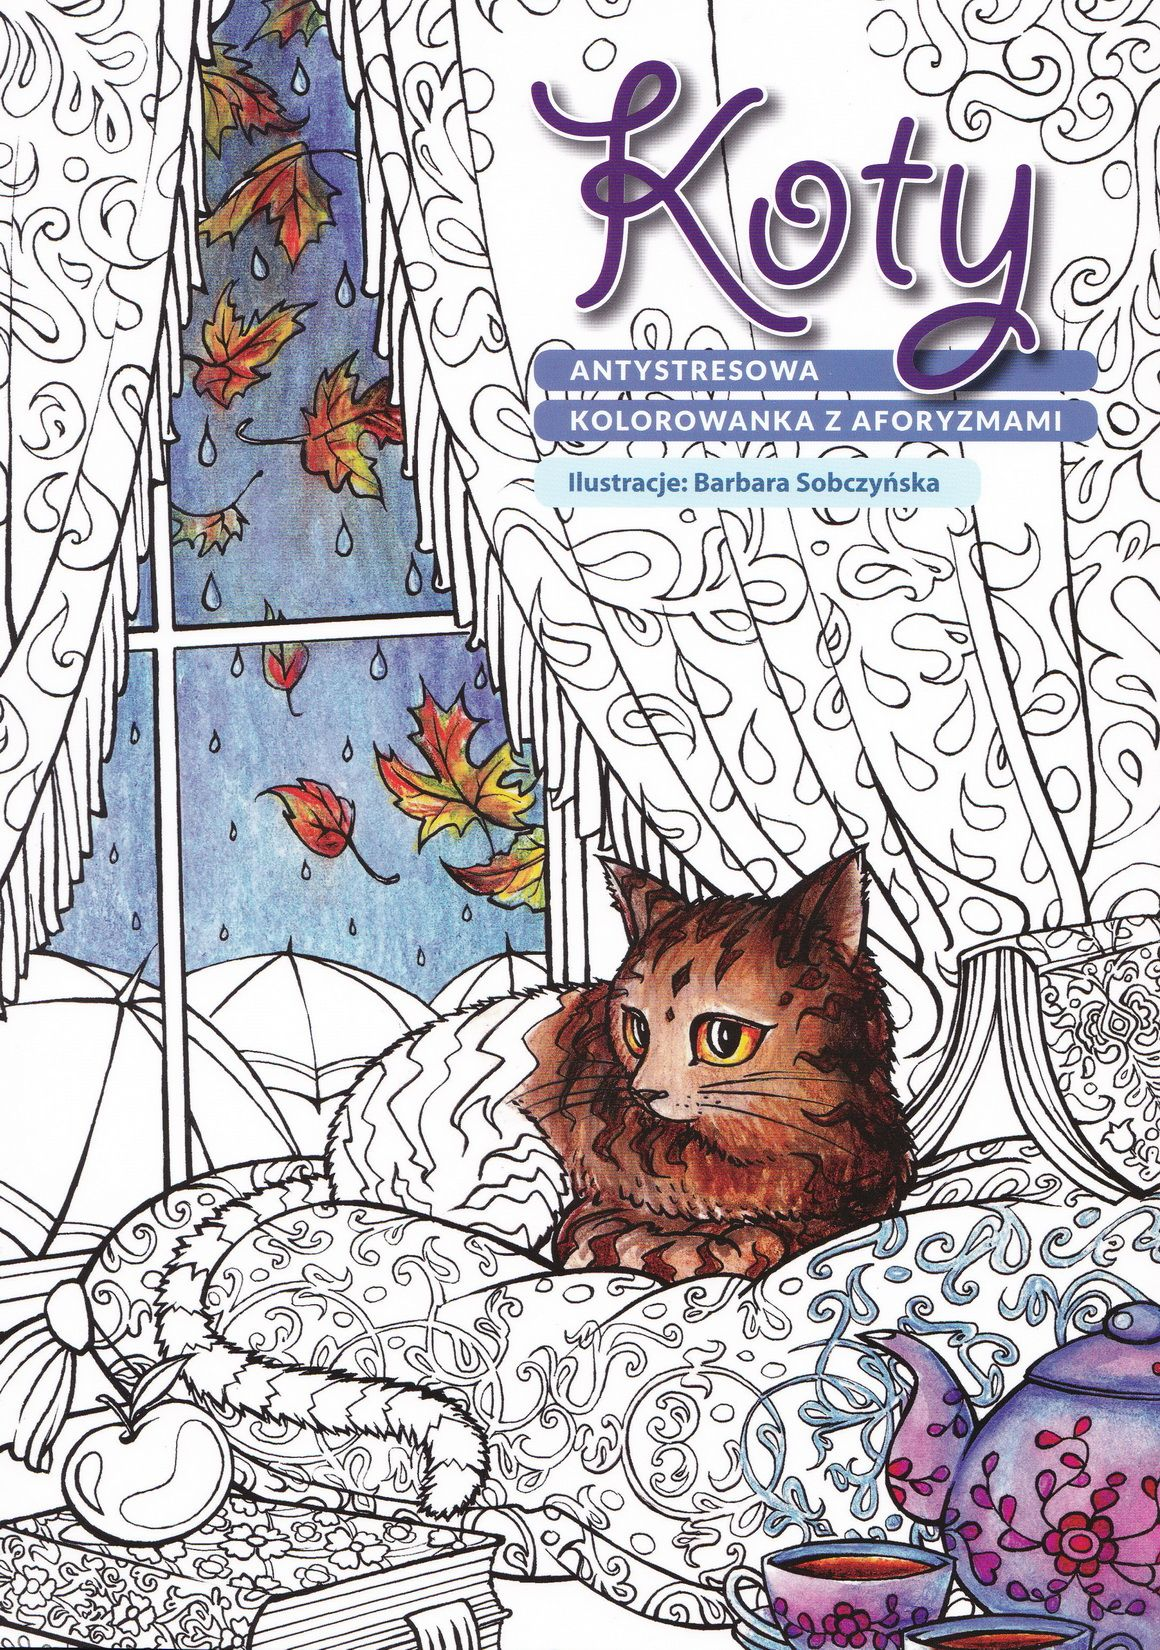 Pin By Malgorzata Kitka On My Coloring Books Coloring Books Drawing Sketches Art